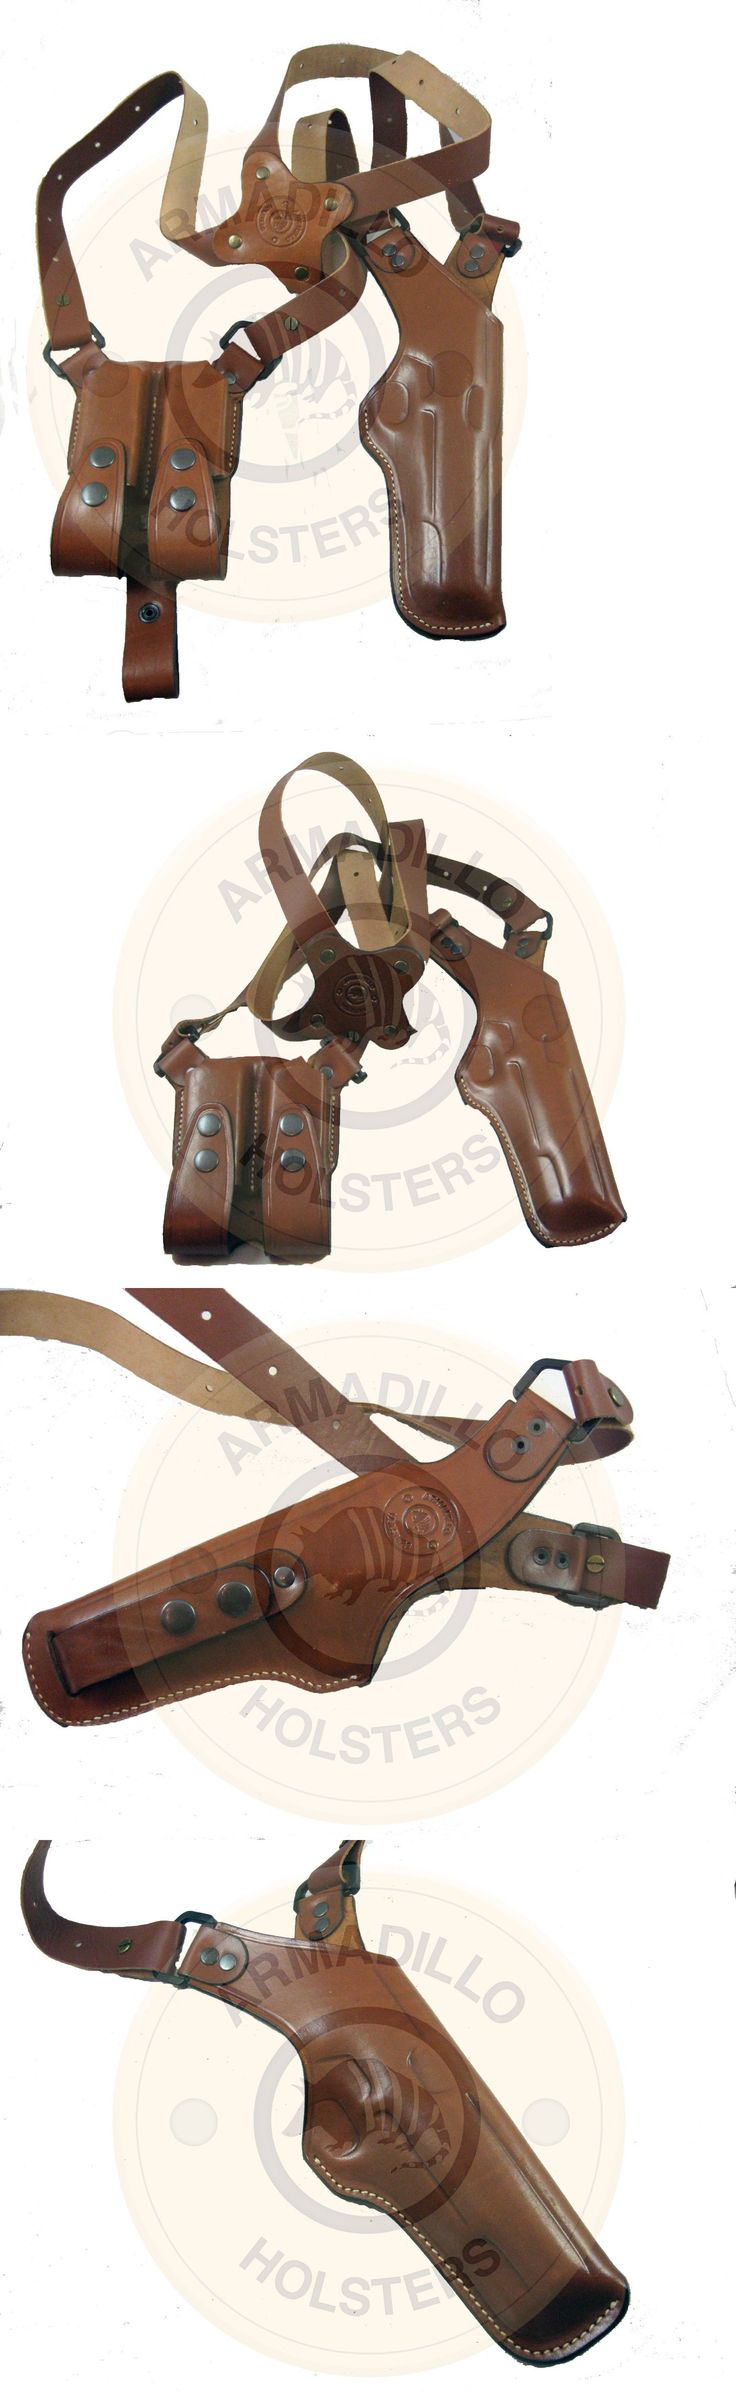 Holsters 177885: Armadillo Tan Leather Vertical Shoulder Holster For 1911 P2v-1911 -> BUY IT NOW ONLY: $71.99 on eBay!